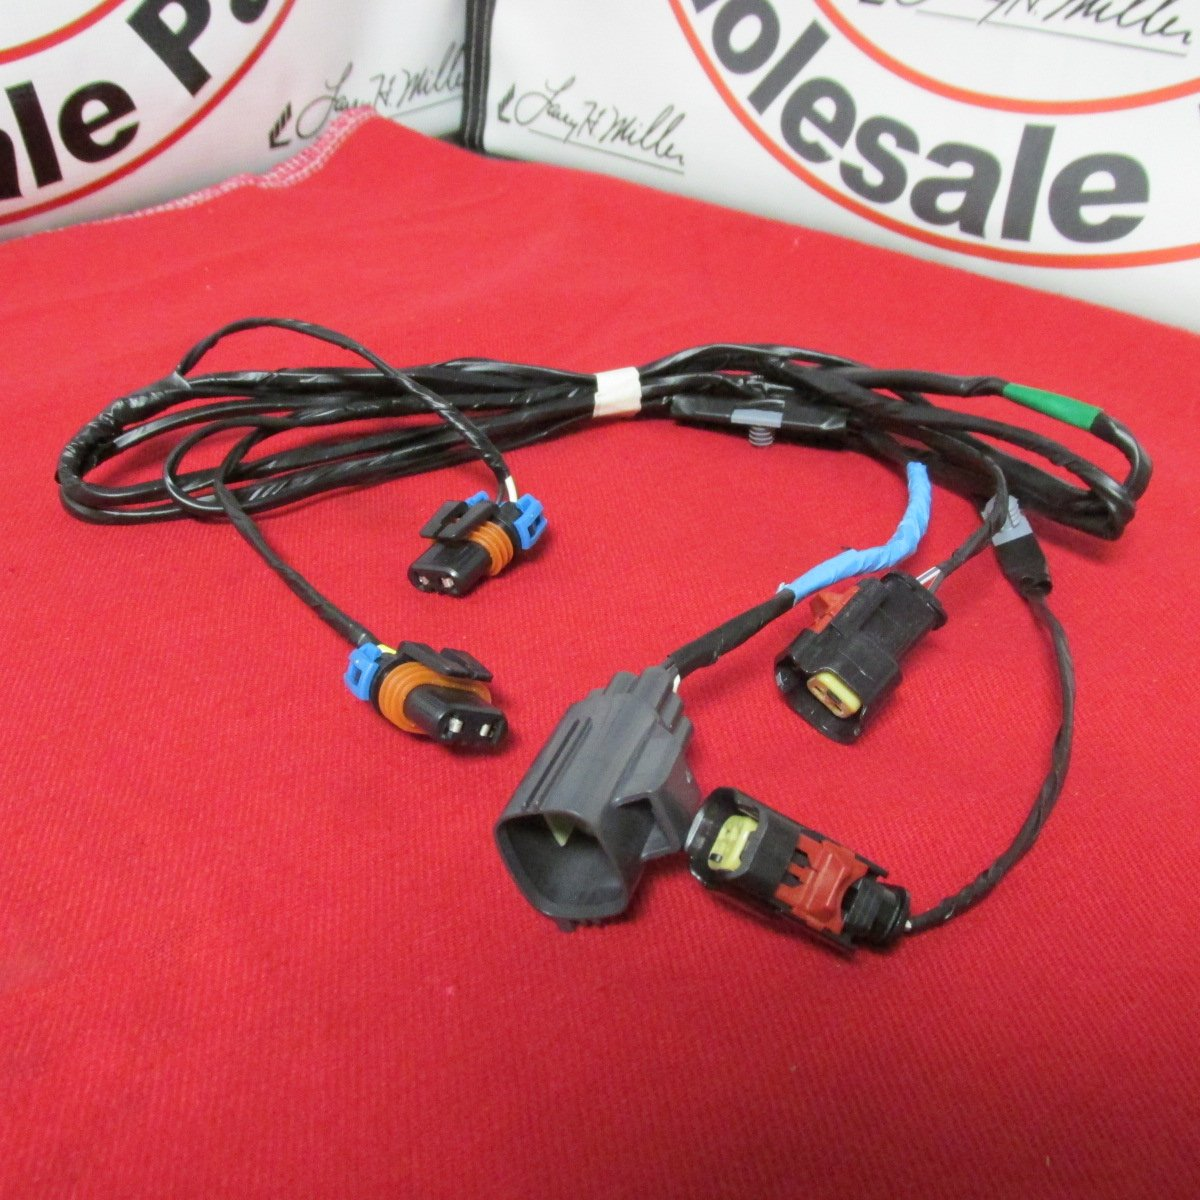 710Nvita7%2BL._SL1200_ amazon com 2005 2010 chrysler 300 front fog lamp wiring harness 2010 chrysler 300 wiring diagram at crackthecode.co